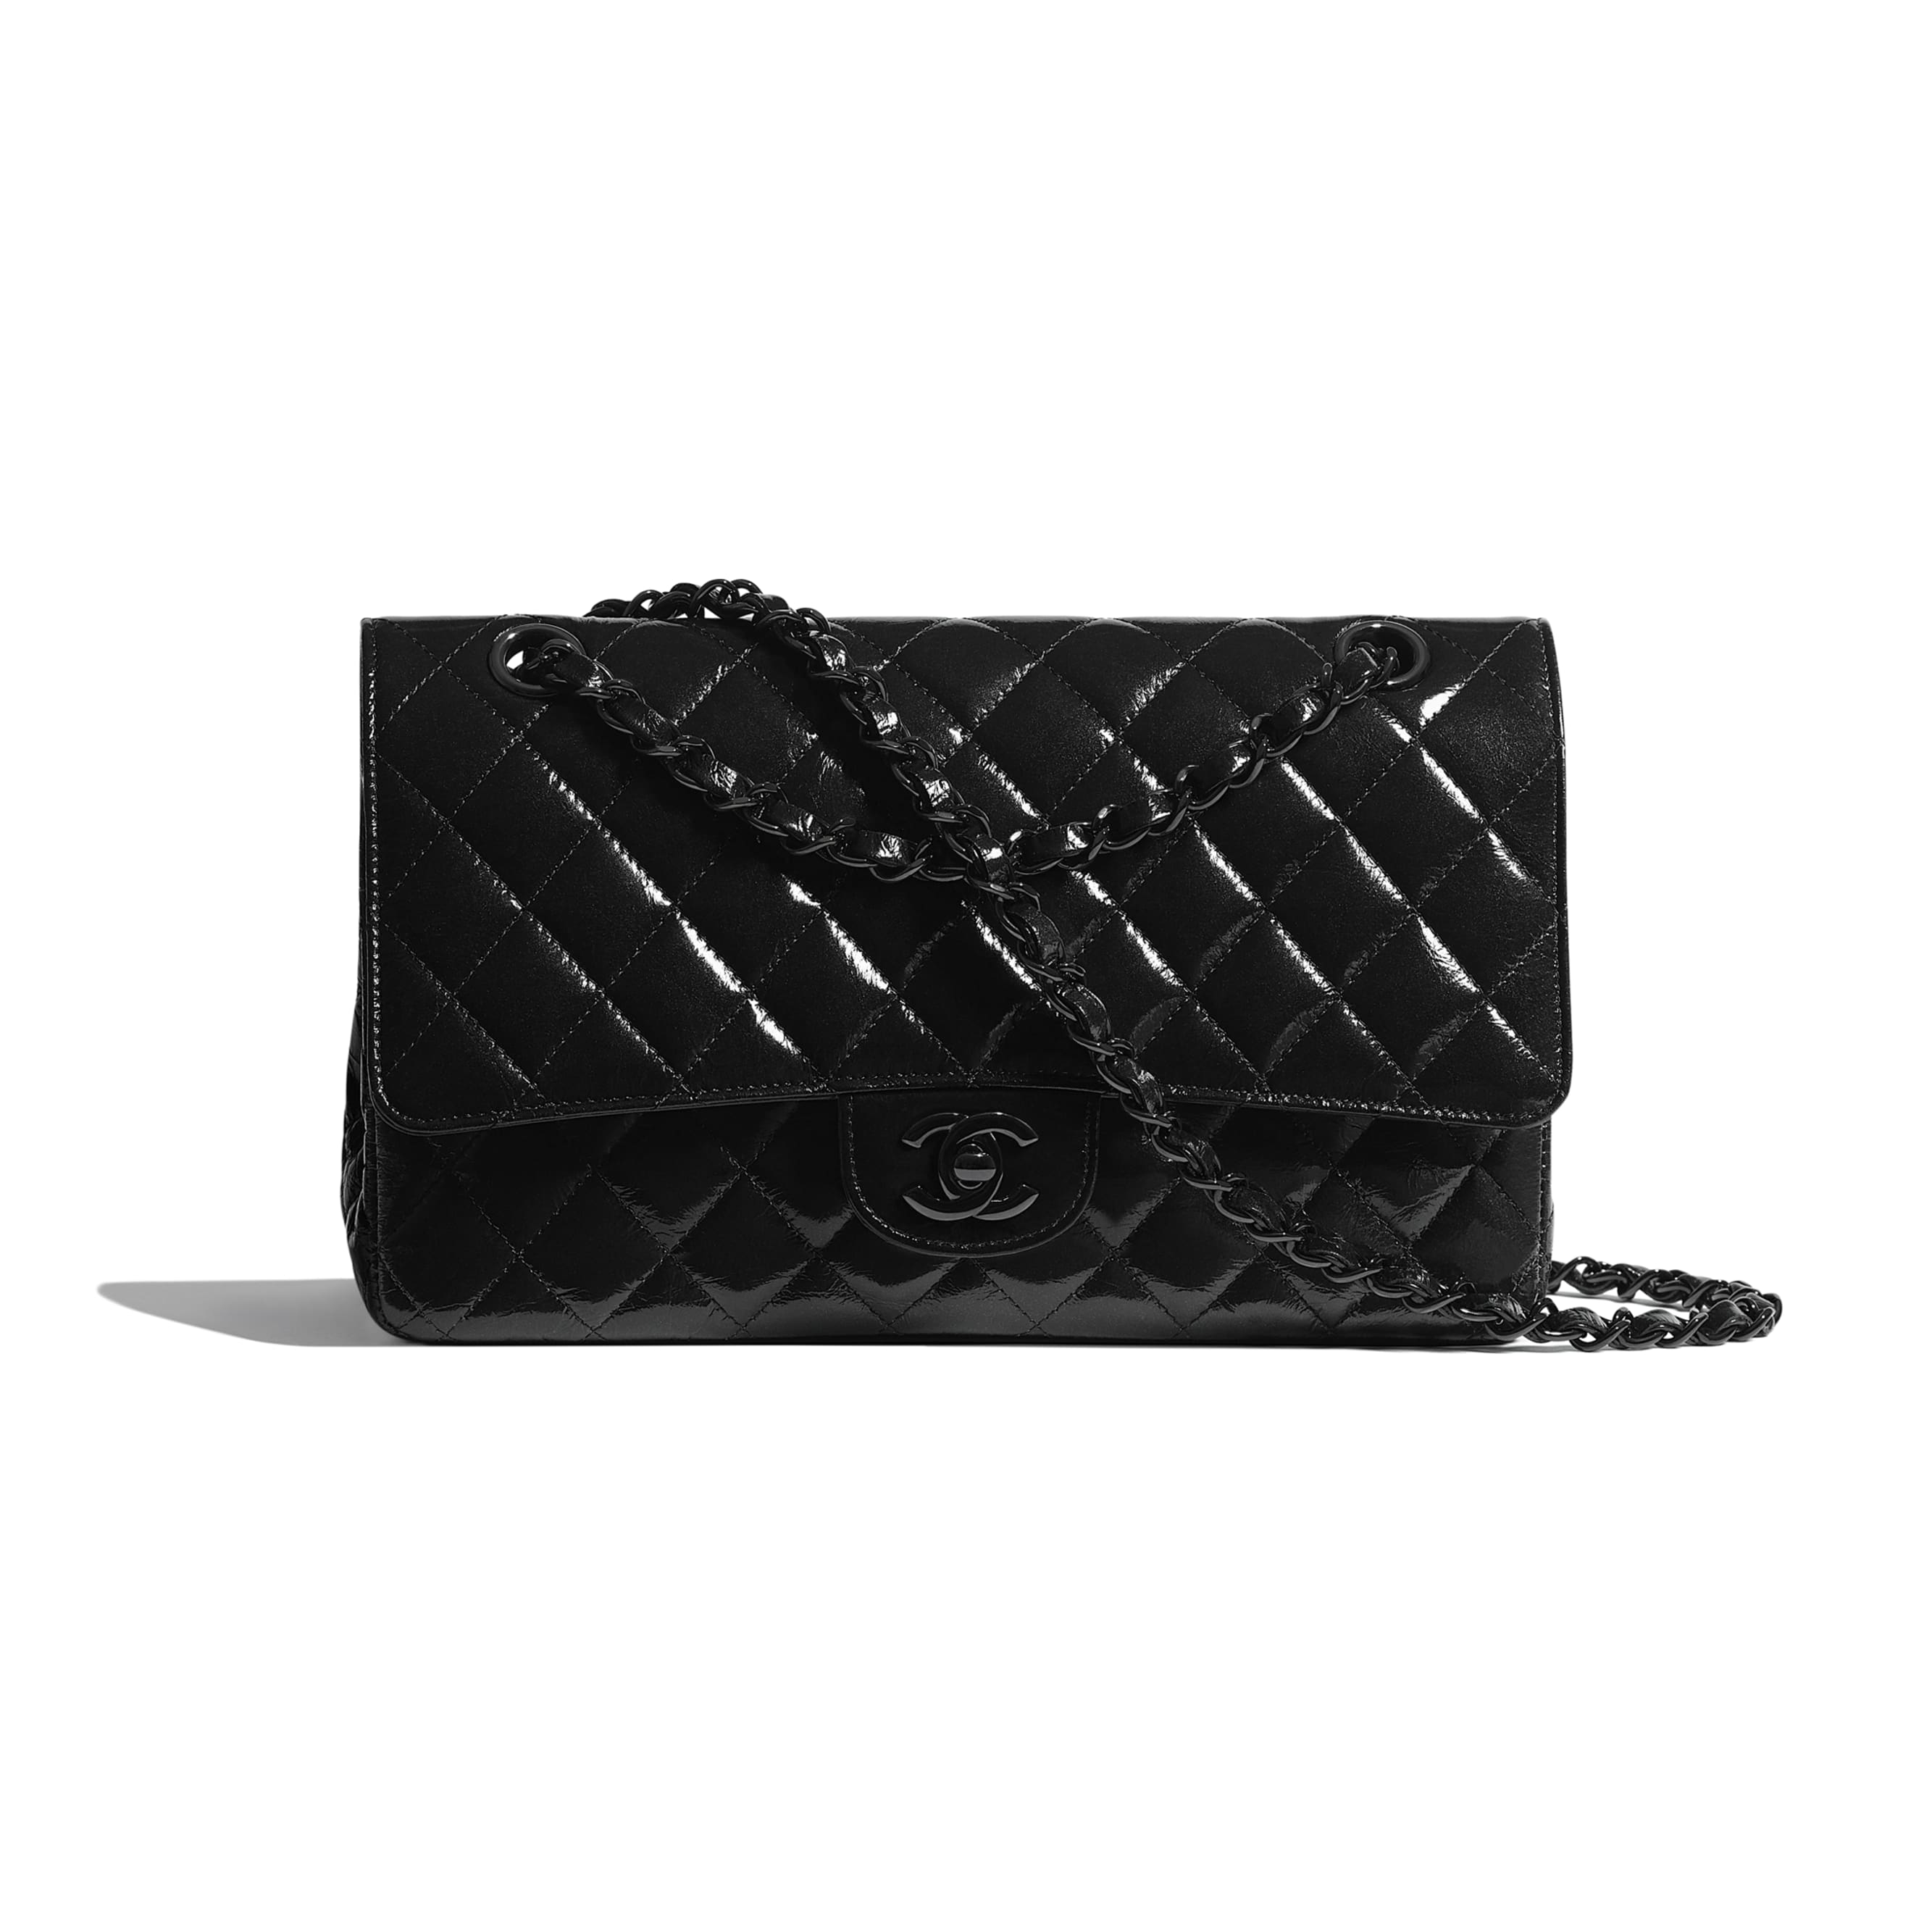 Classic Handbag - Black - Shiny Crumpled Calfskin & Black Metal - CHANEL - Default view - see standard sized version